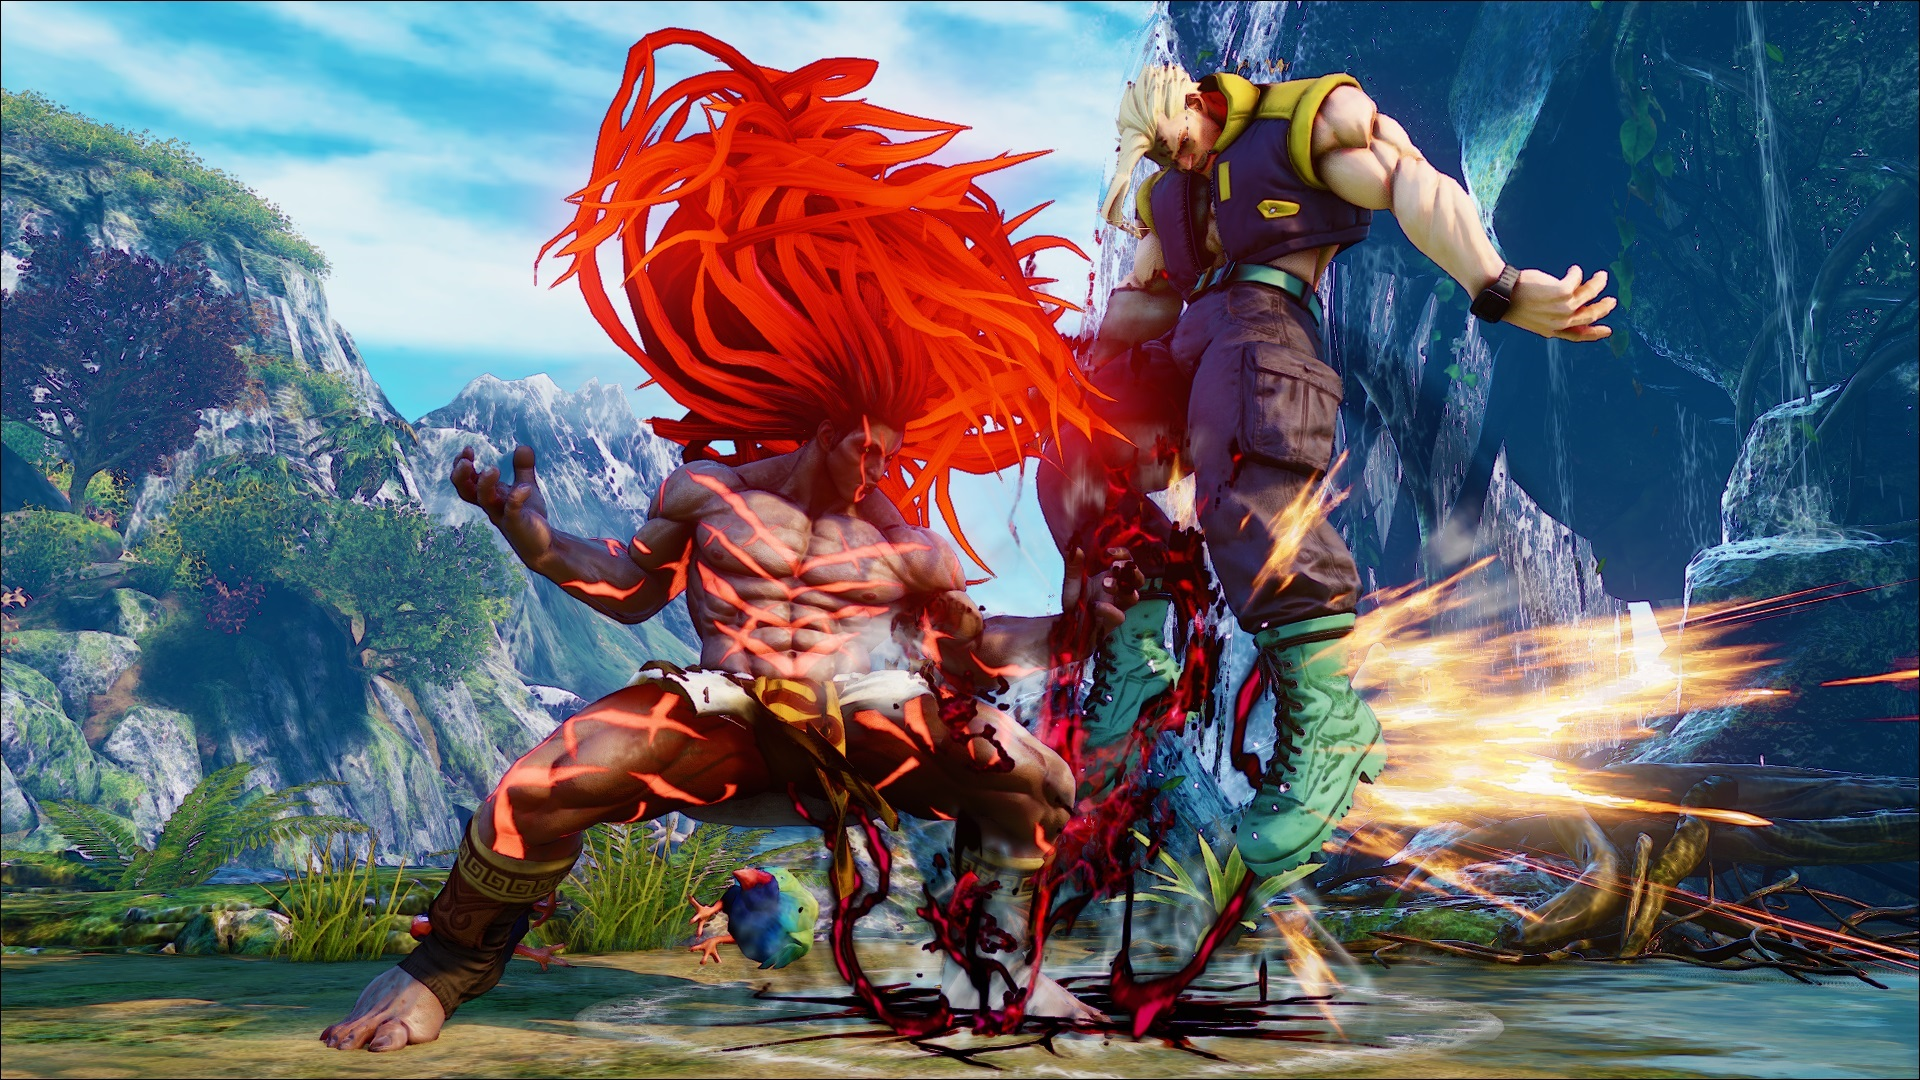 Street Fighter 5: Arcade Edition - 8 Facts You Need To Know | What's